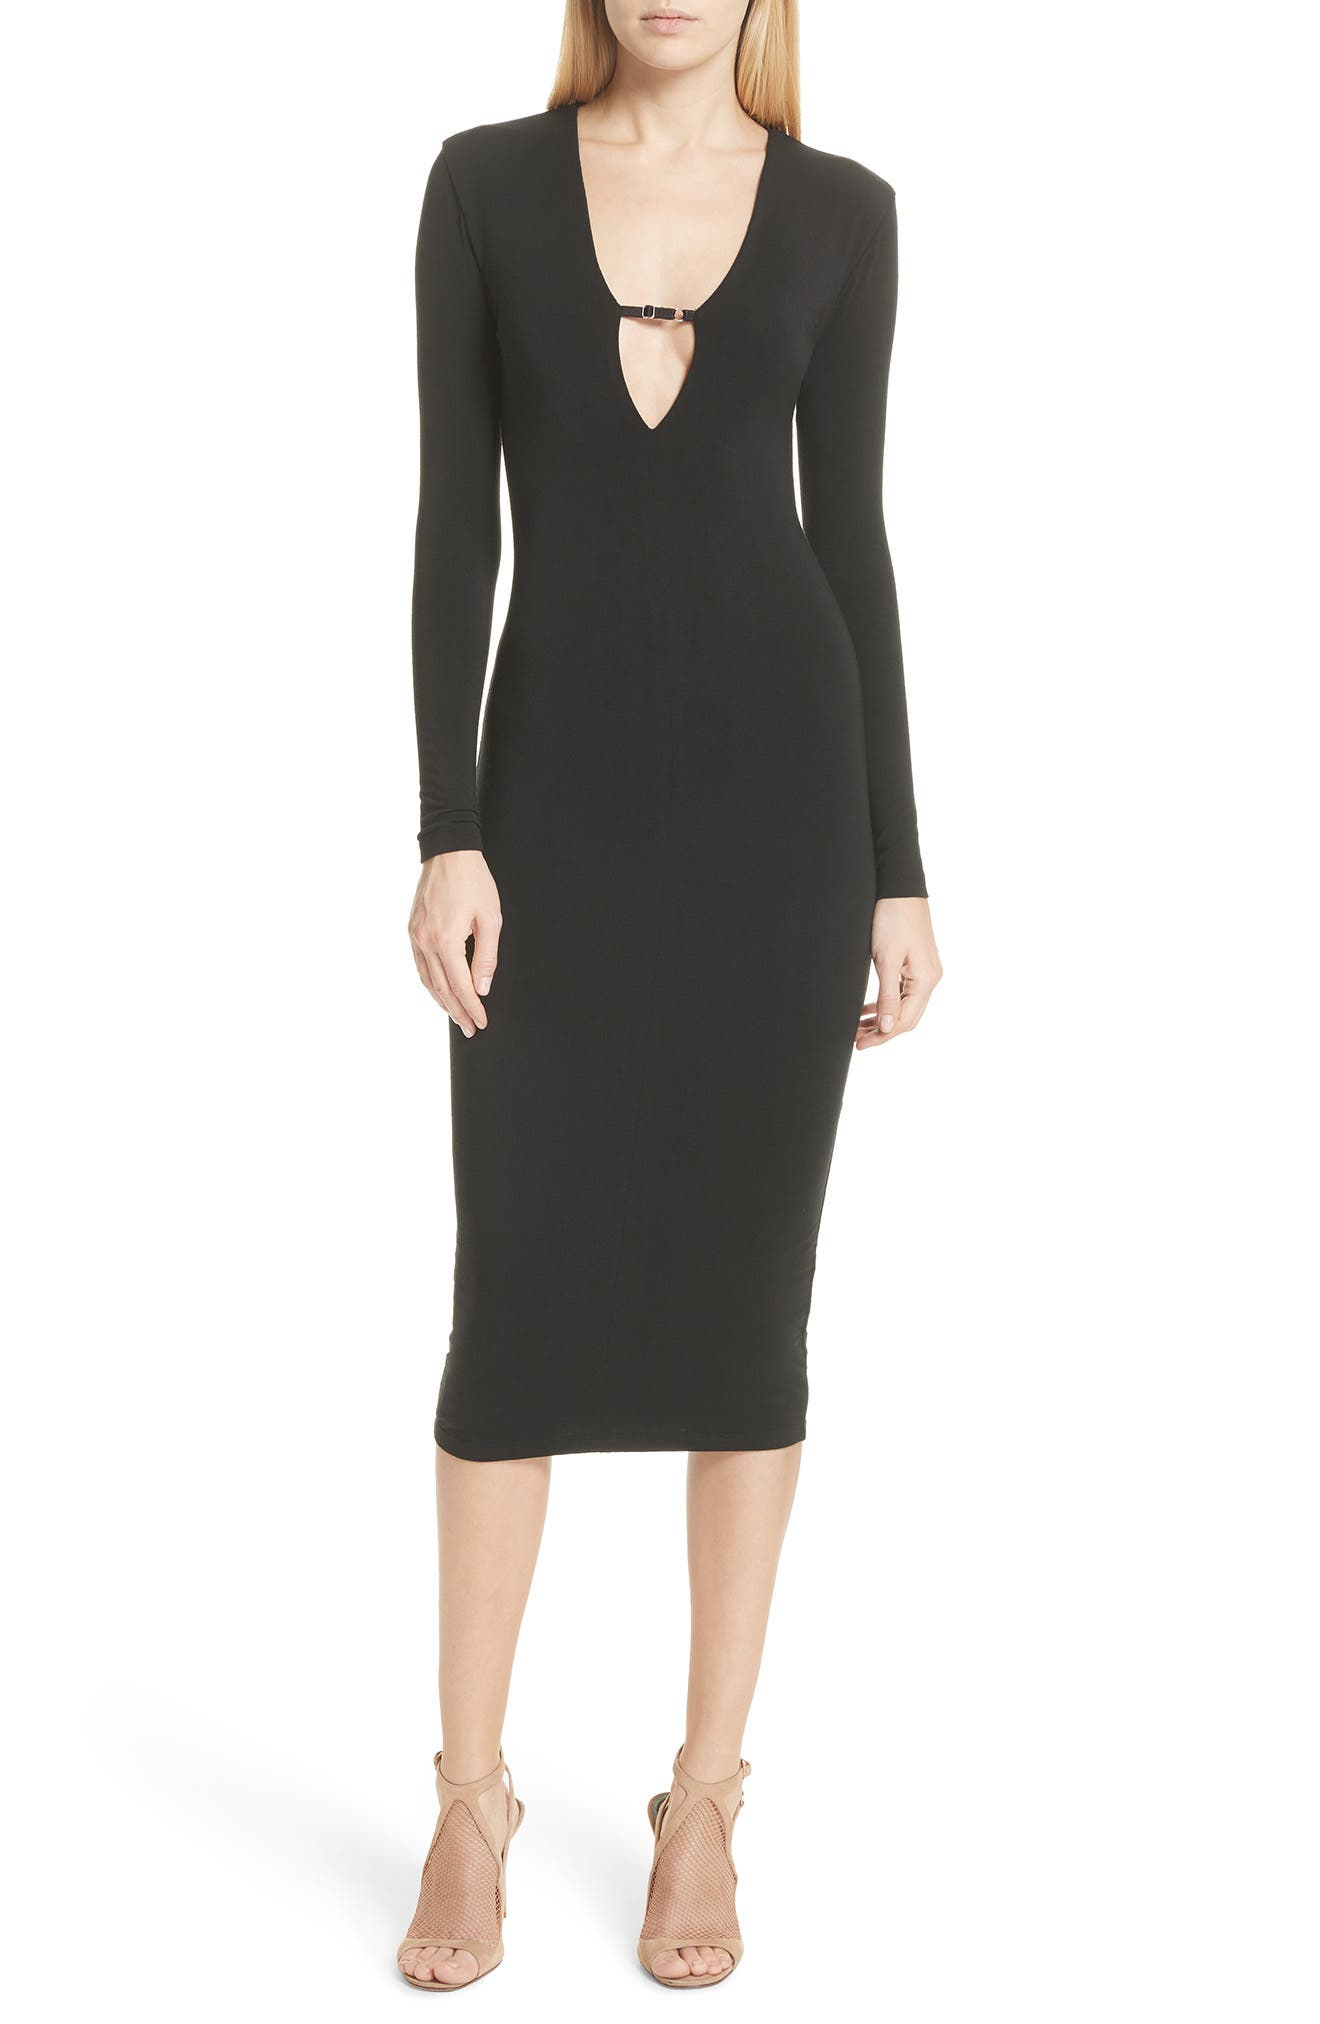 T by Alexander Wang Keyhole Neck Body-Con Dress,                         Main,                         color, 001